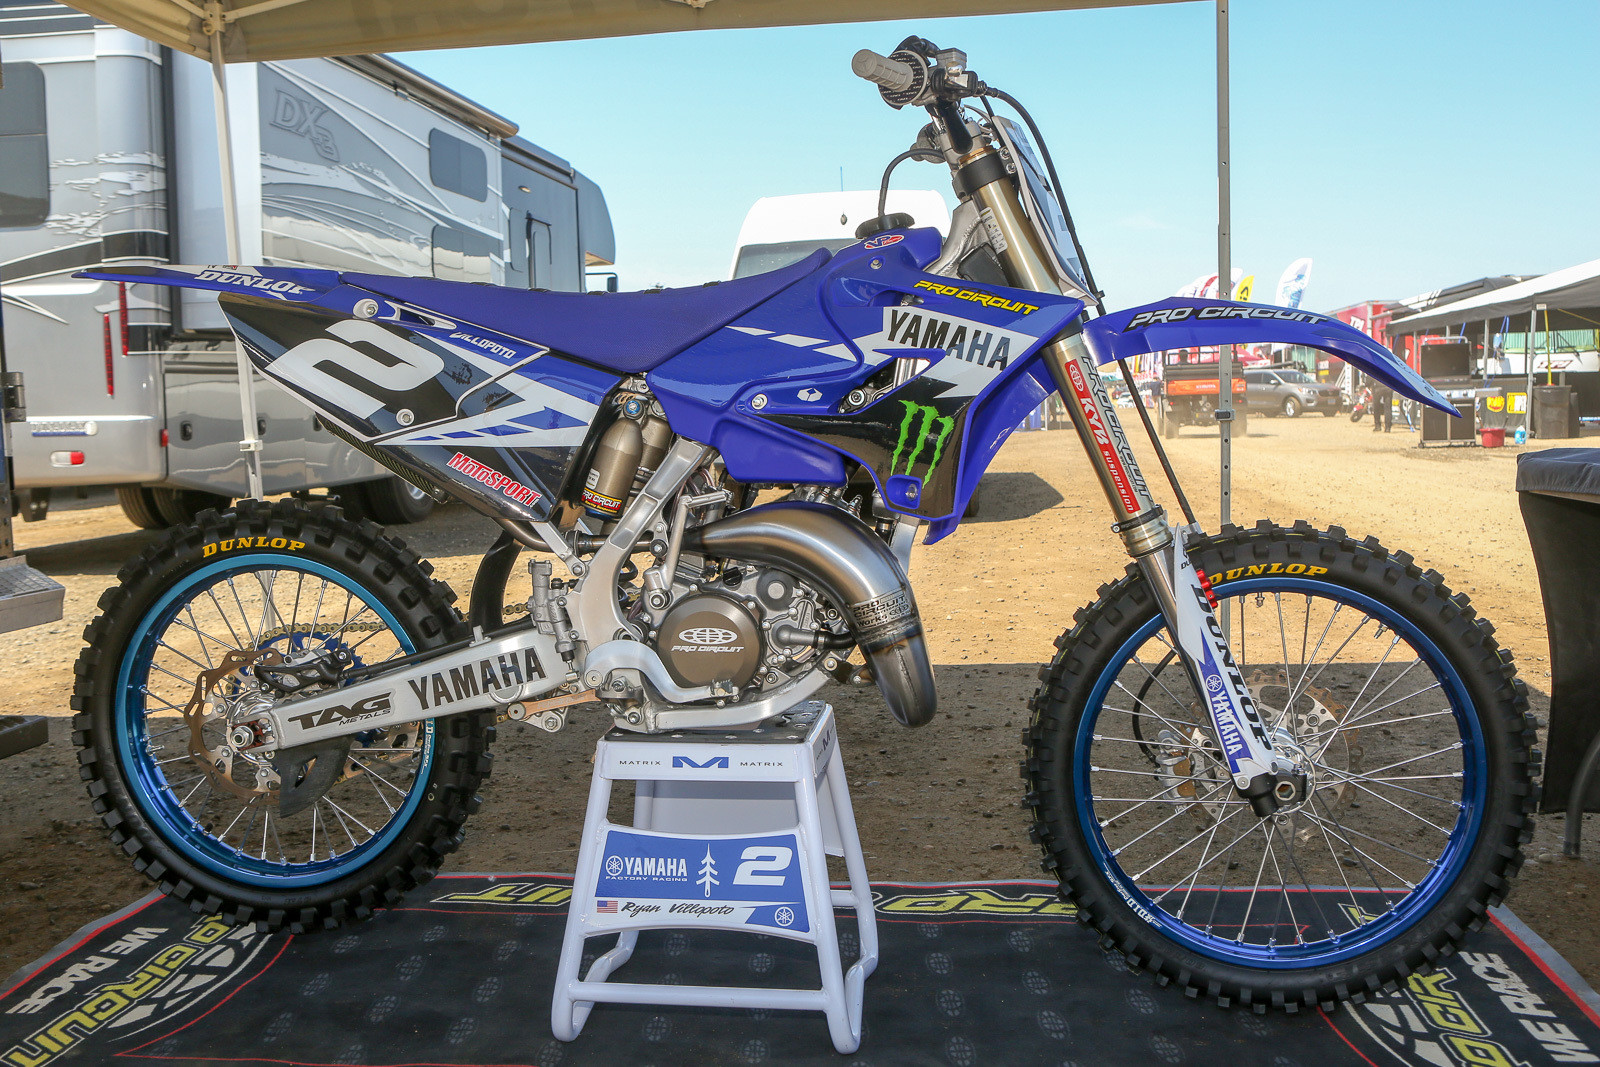 Ryan Villopoto has always had strong ties with Pro Circuit, and that continues in conjunction with his latest Yamaha deal. That includes things like having them build up this YZ125 for the All-Star race (Mitch gave it the full factory treatment), and the fact that Ryan has a small corner of the shop to use as a workspace.